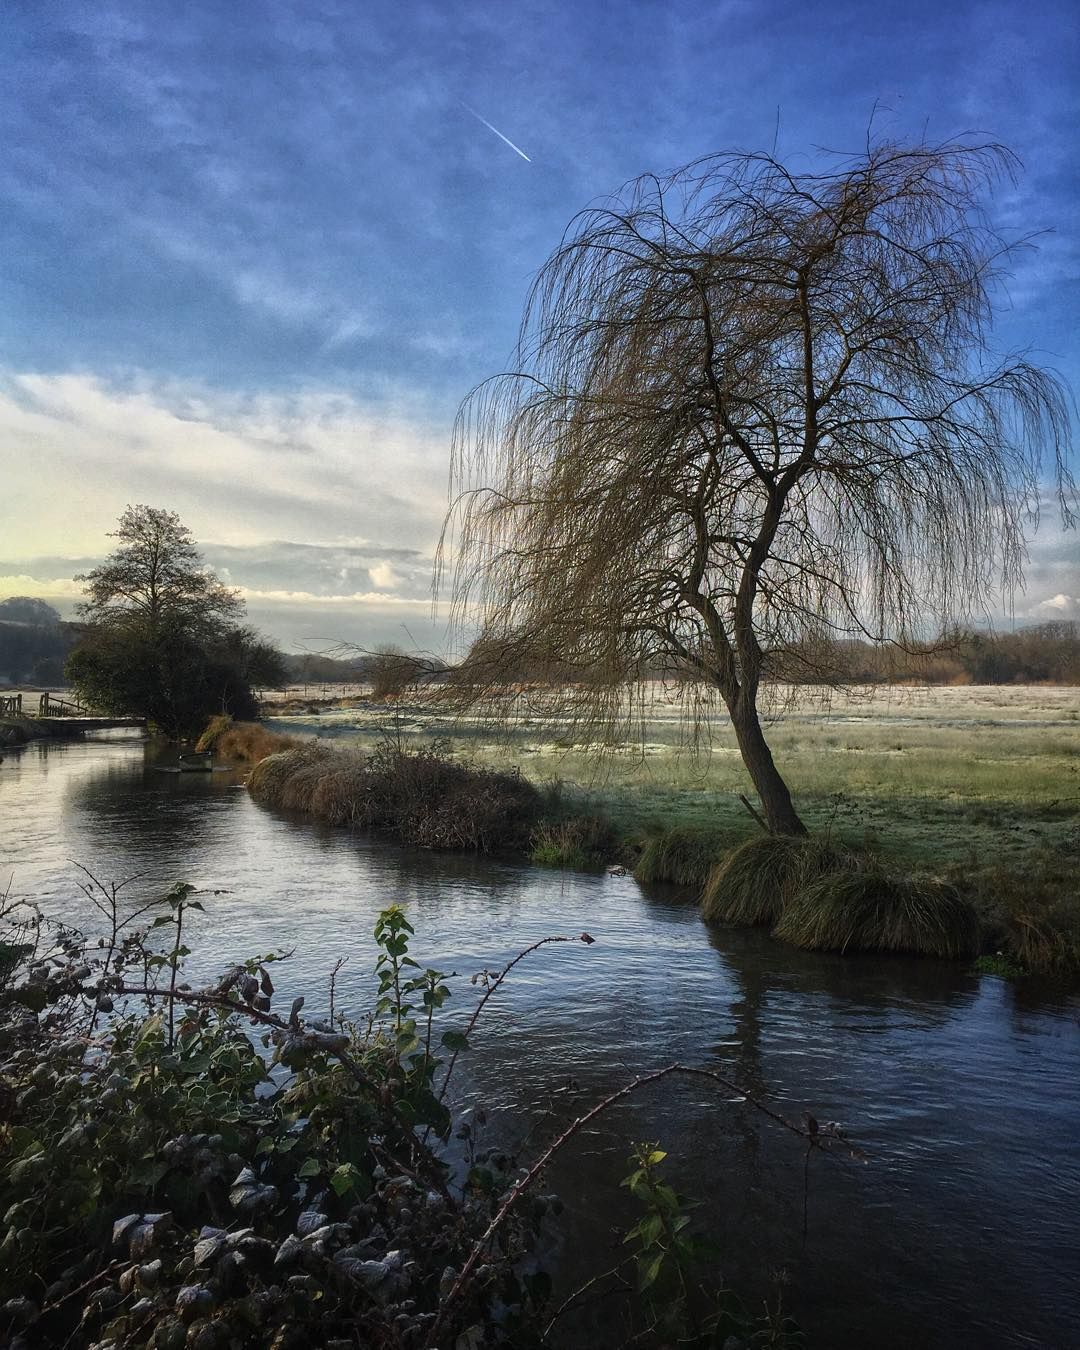 Frosty one this morning it's going to be a blue sky day. #ukcountryside #watermeadows #frost #chemtrails #itchen by johnkernickphotography